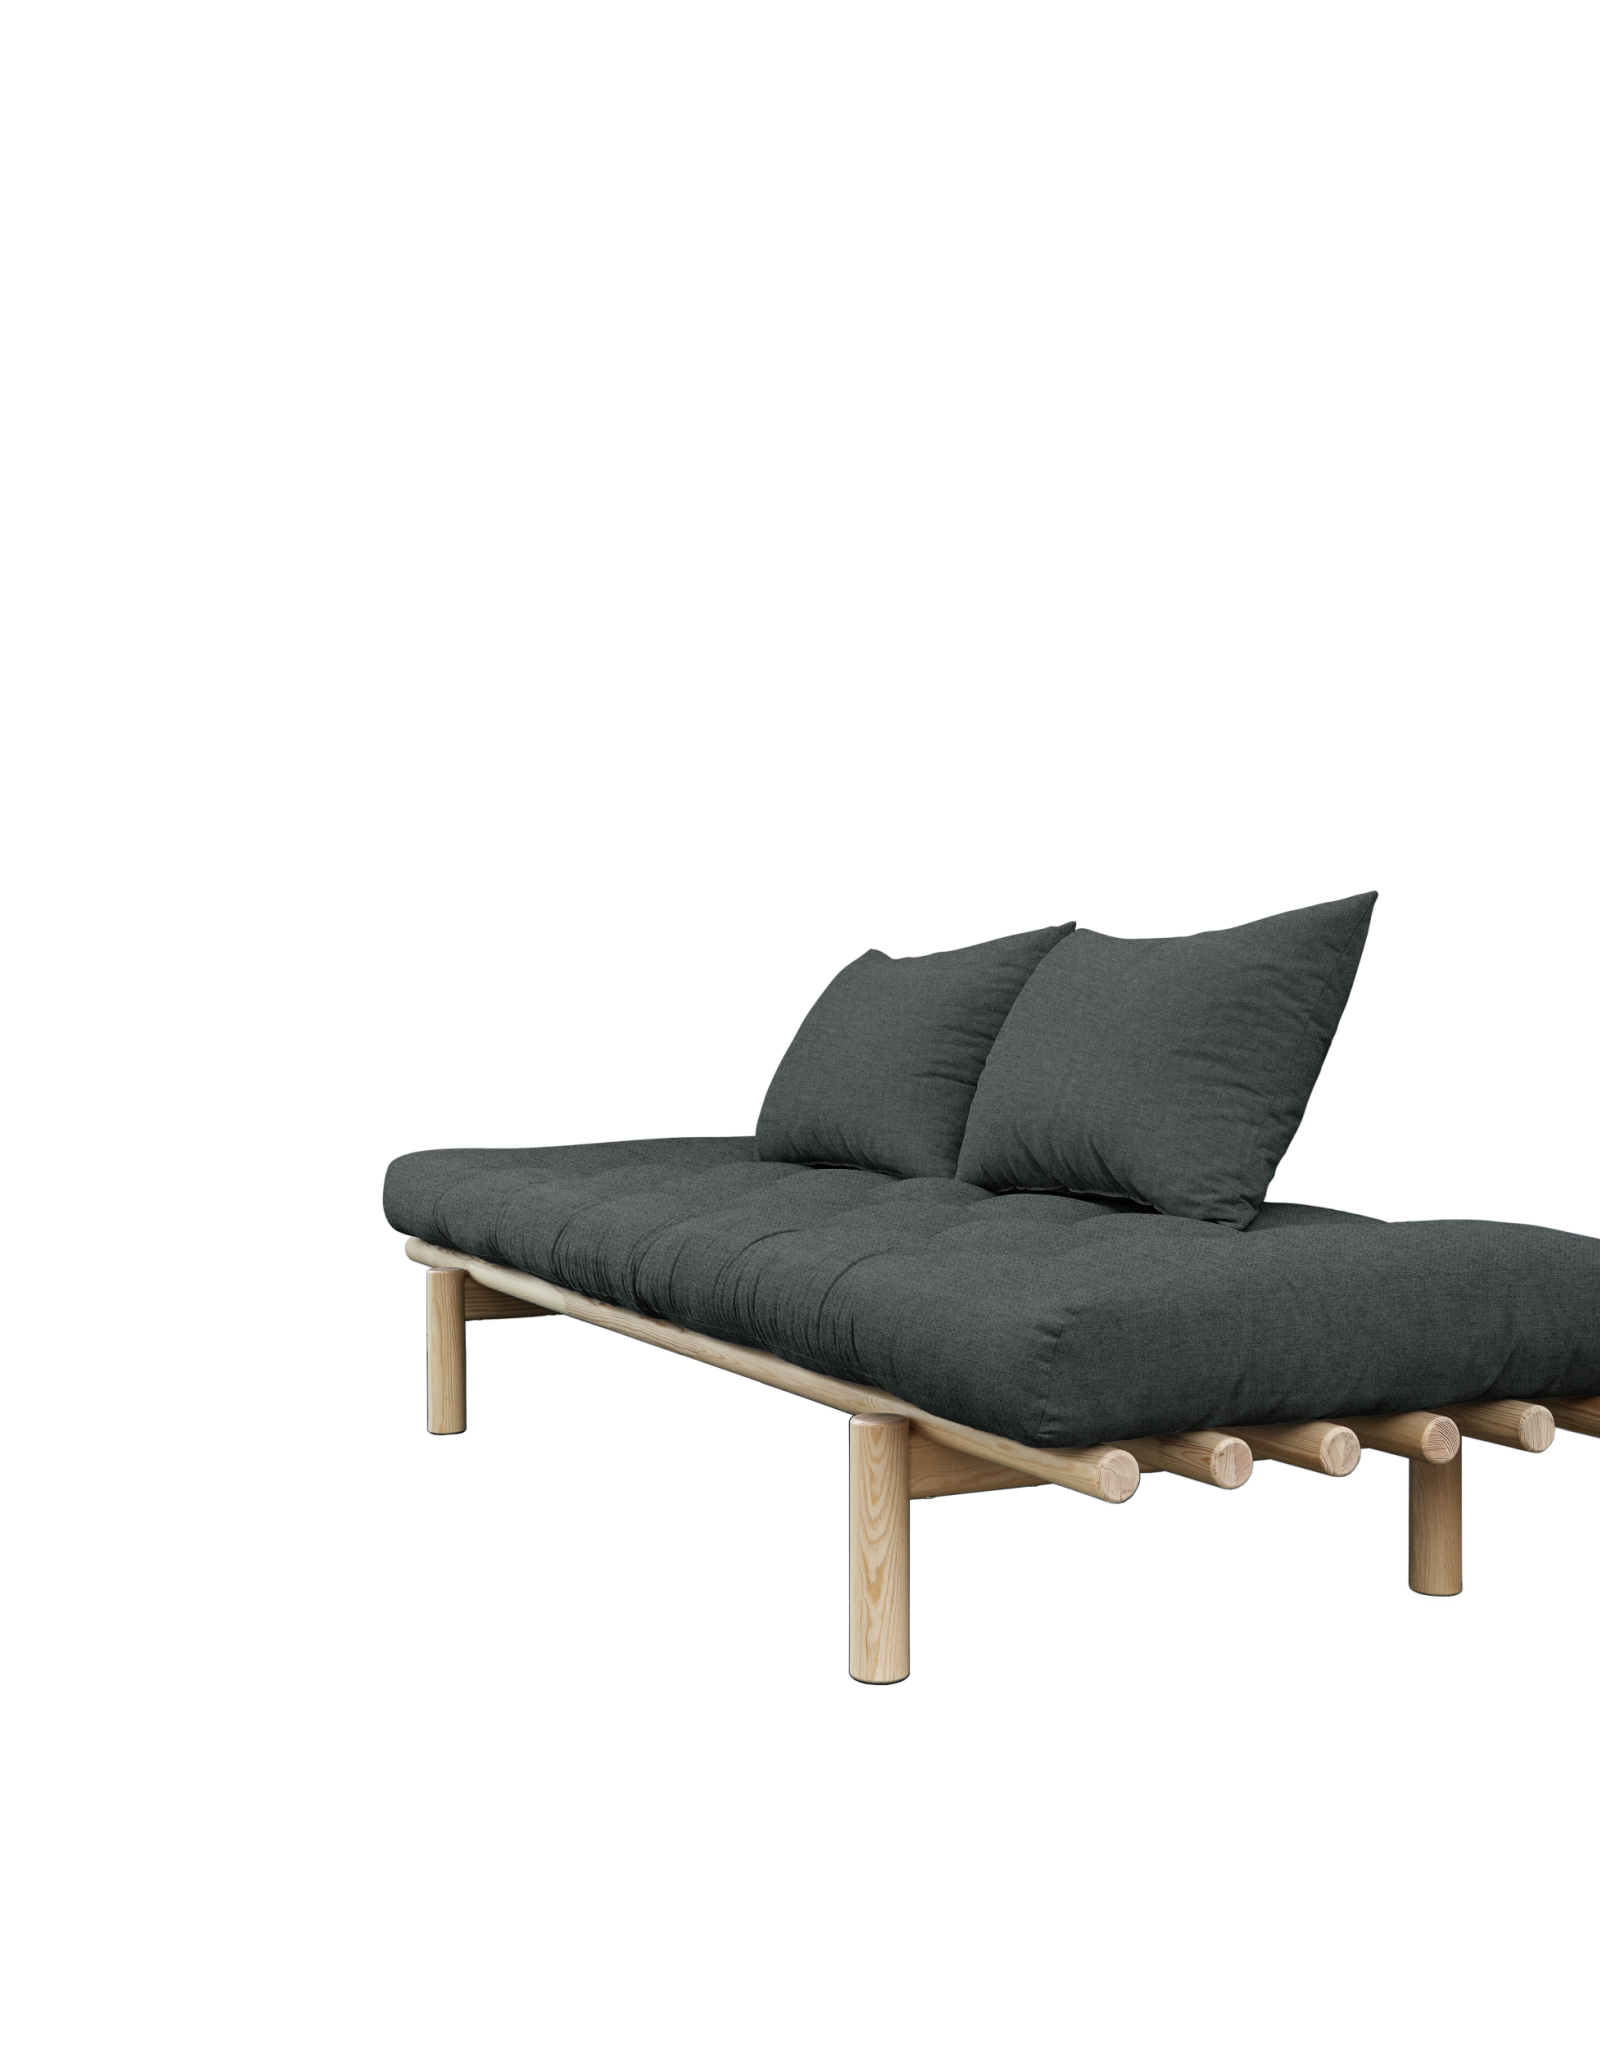 Daybed Pace - Transparant Donkergrijs - Direct Leverbaar